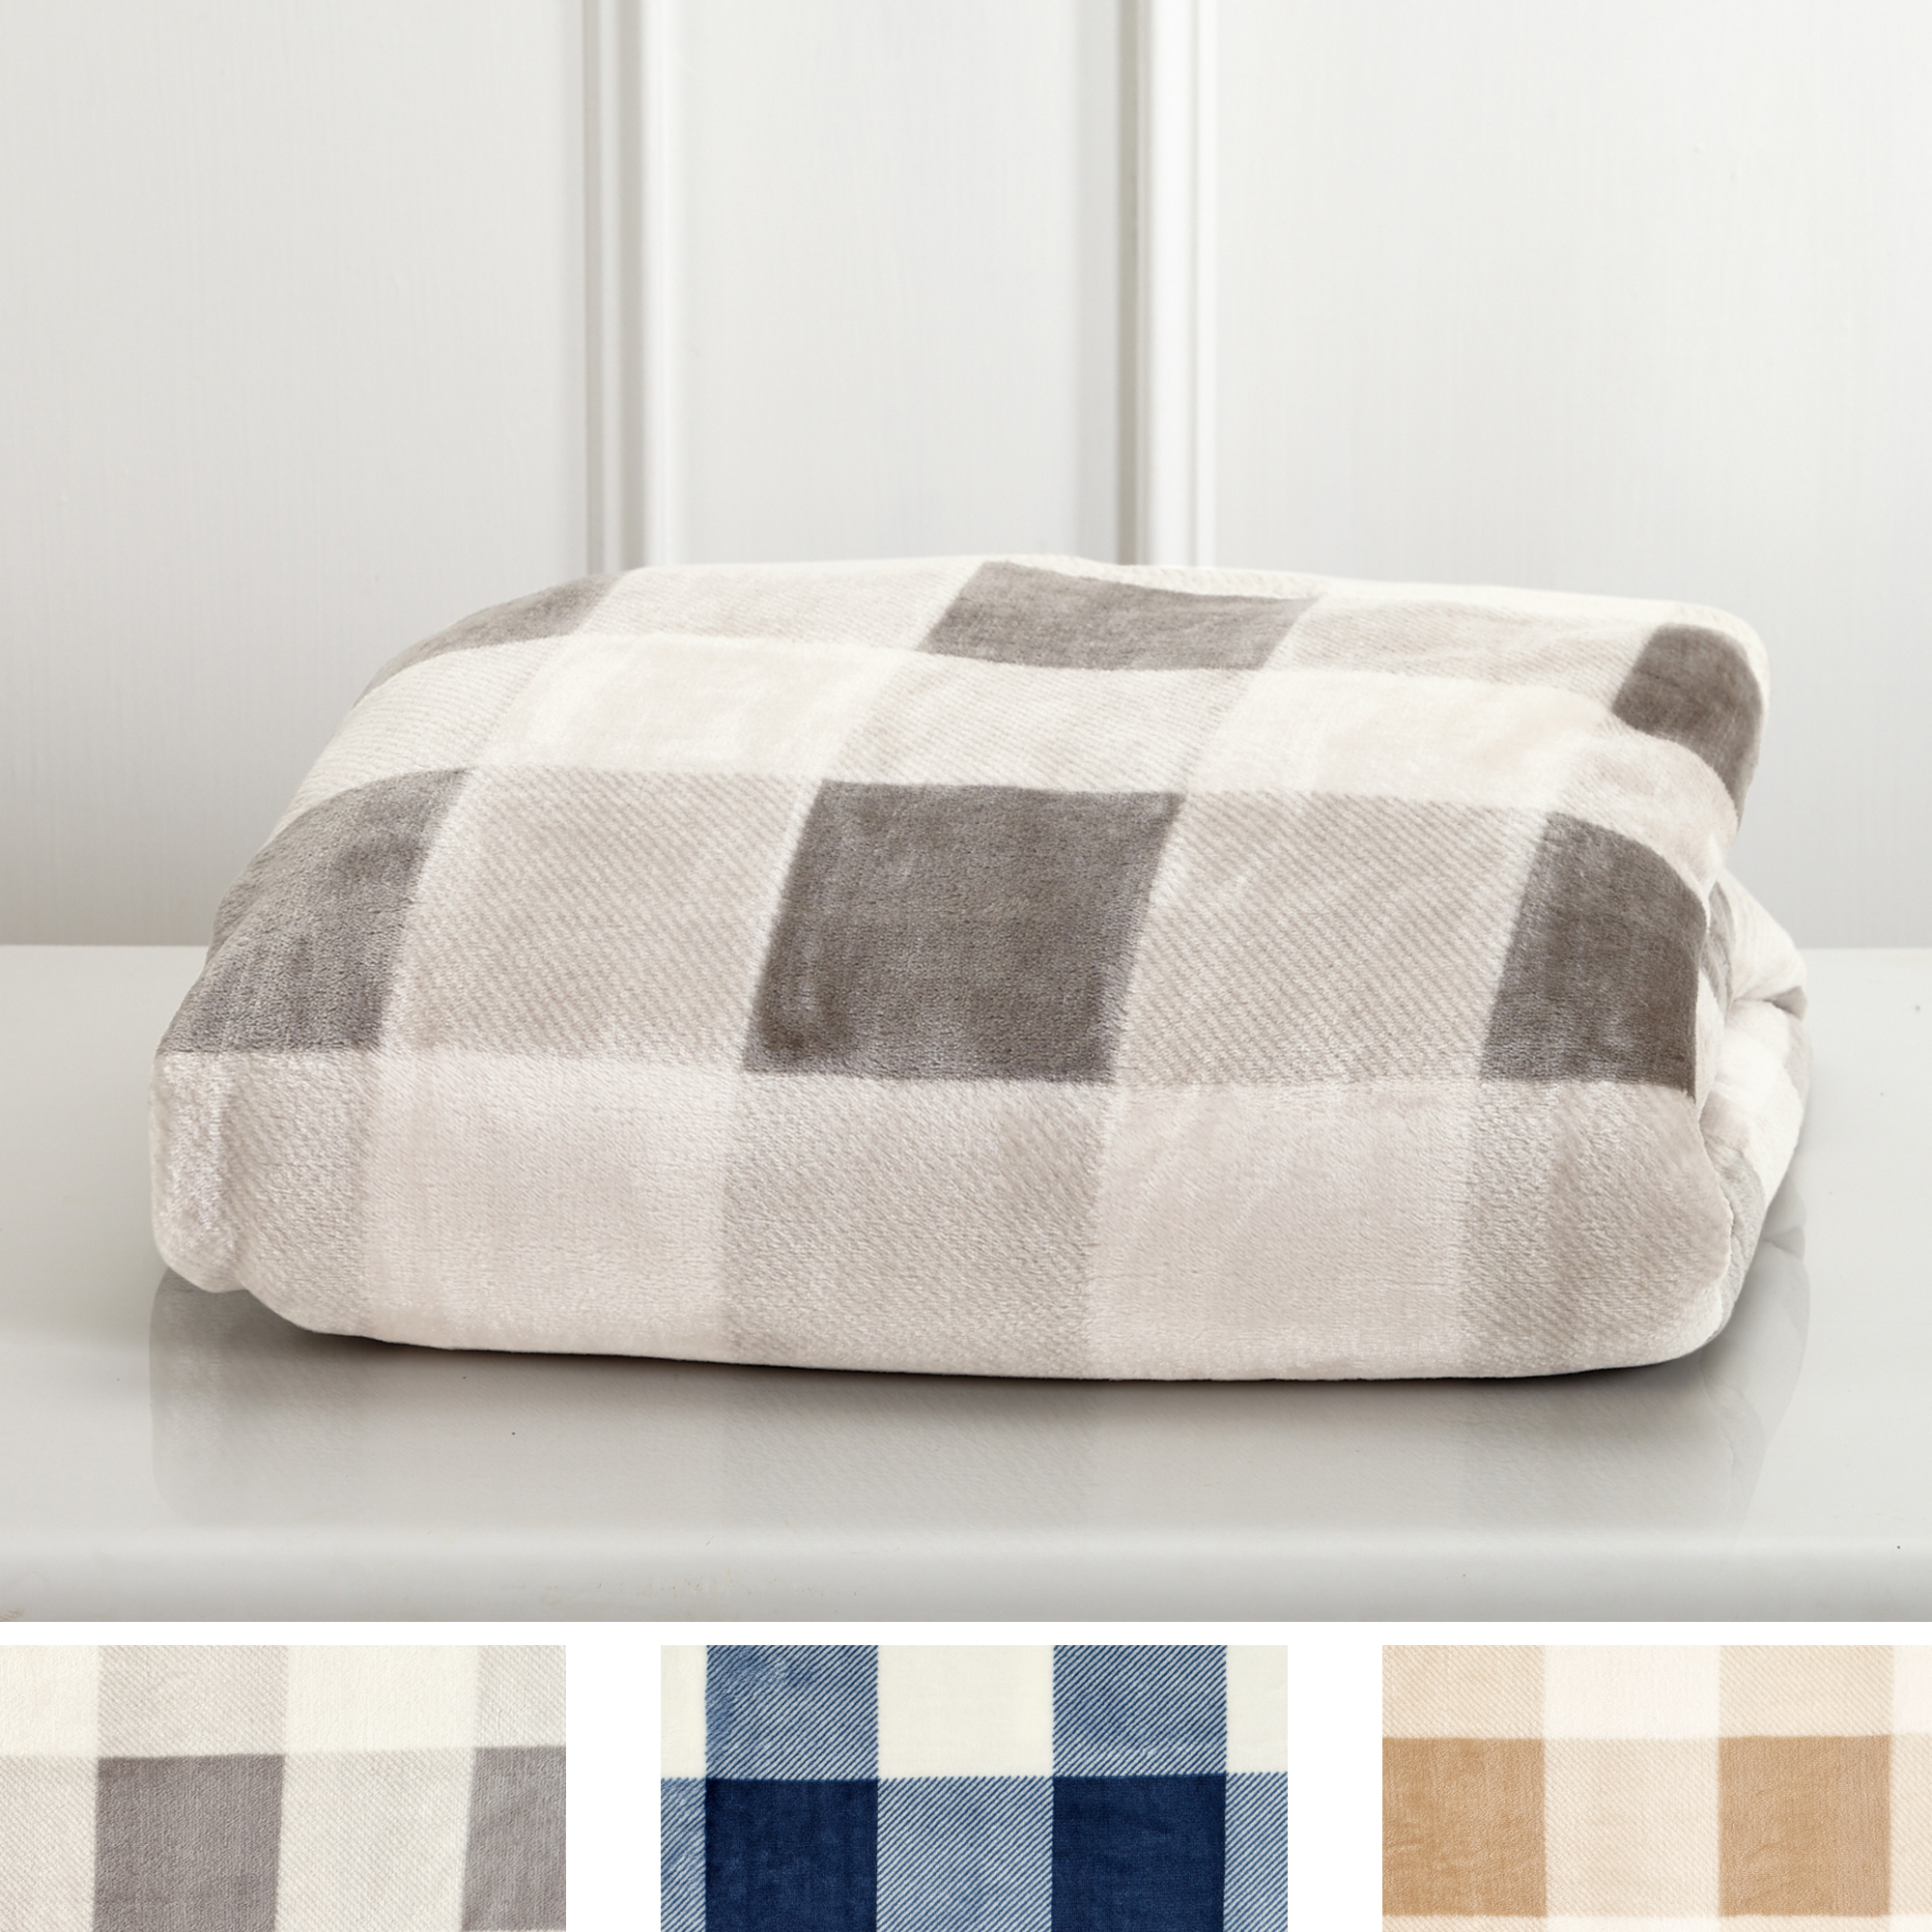 Super Soft Plaid Buffalo Check Velvet Plush Bed Blanket. By Great Bay Home